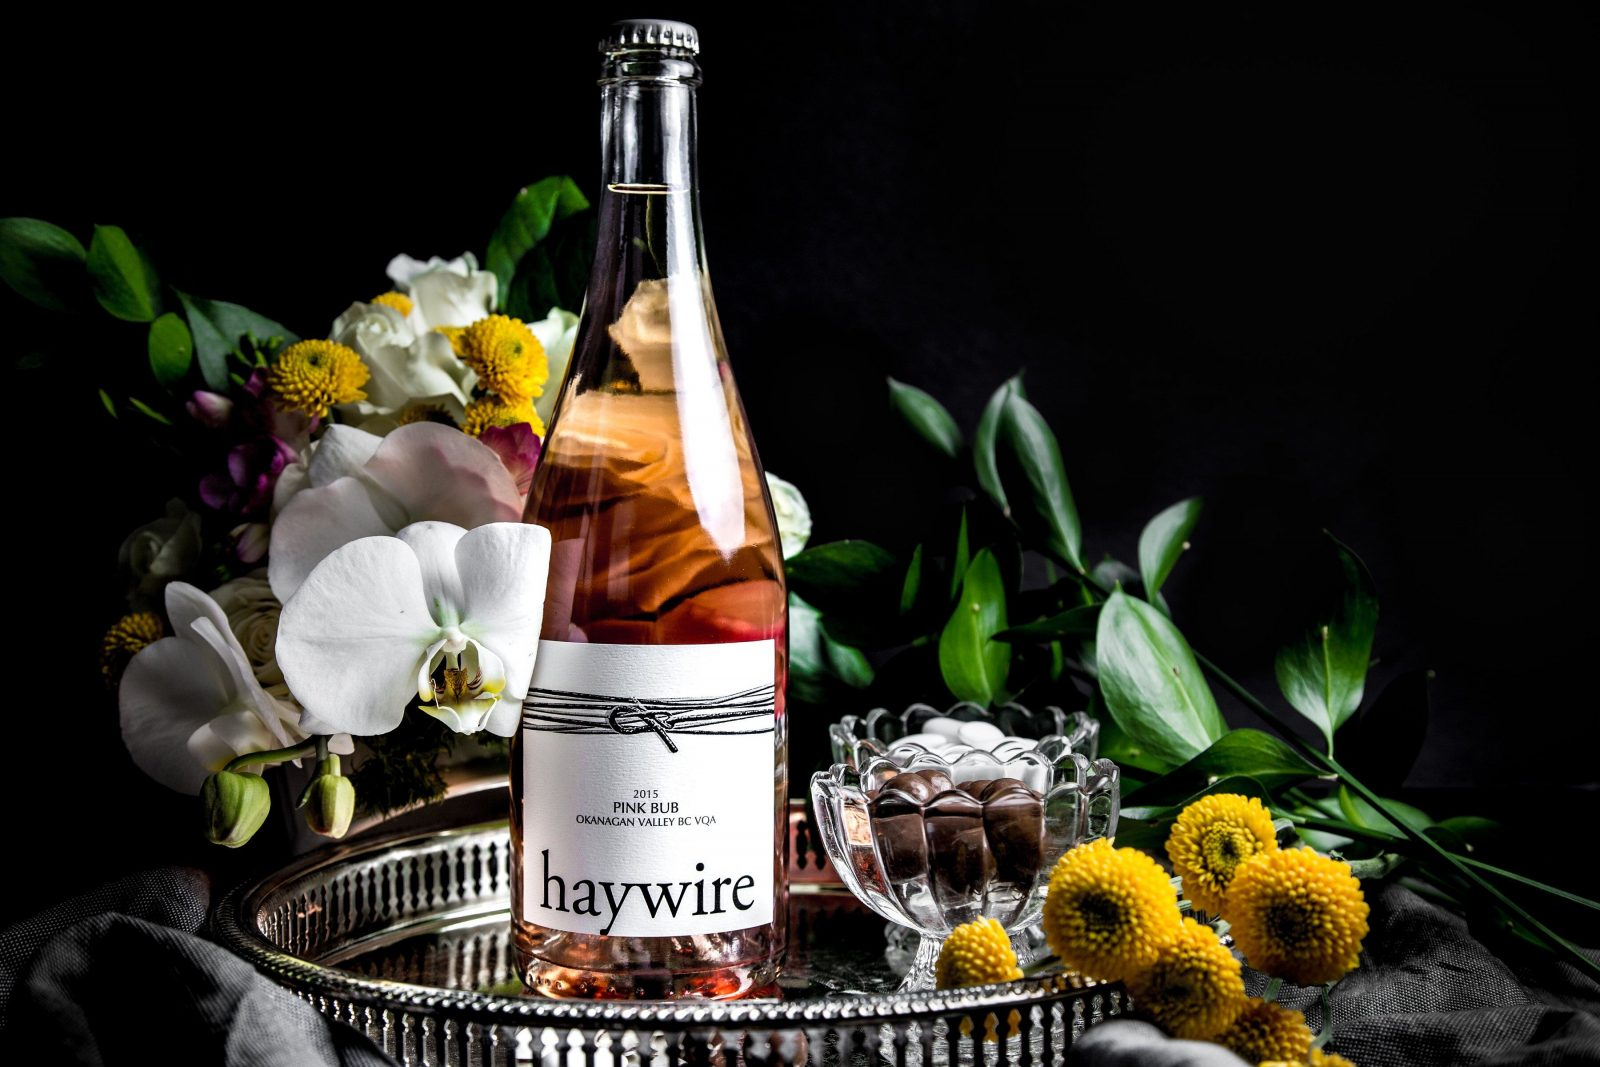 Haywire Pink Bubbly on a platter with flowers